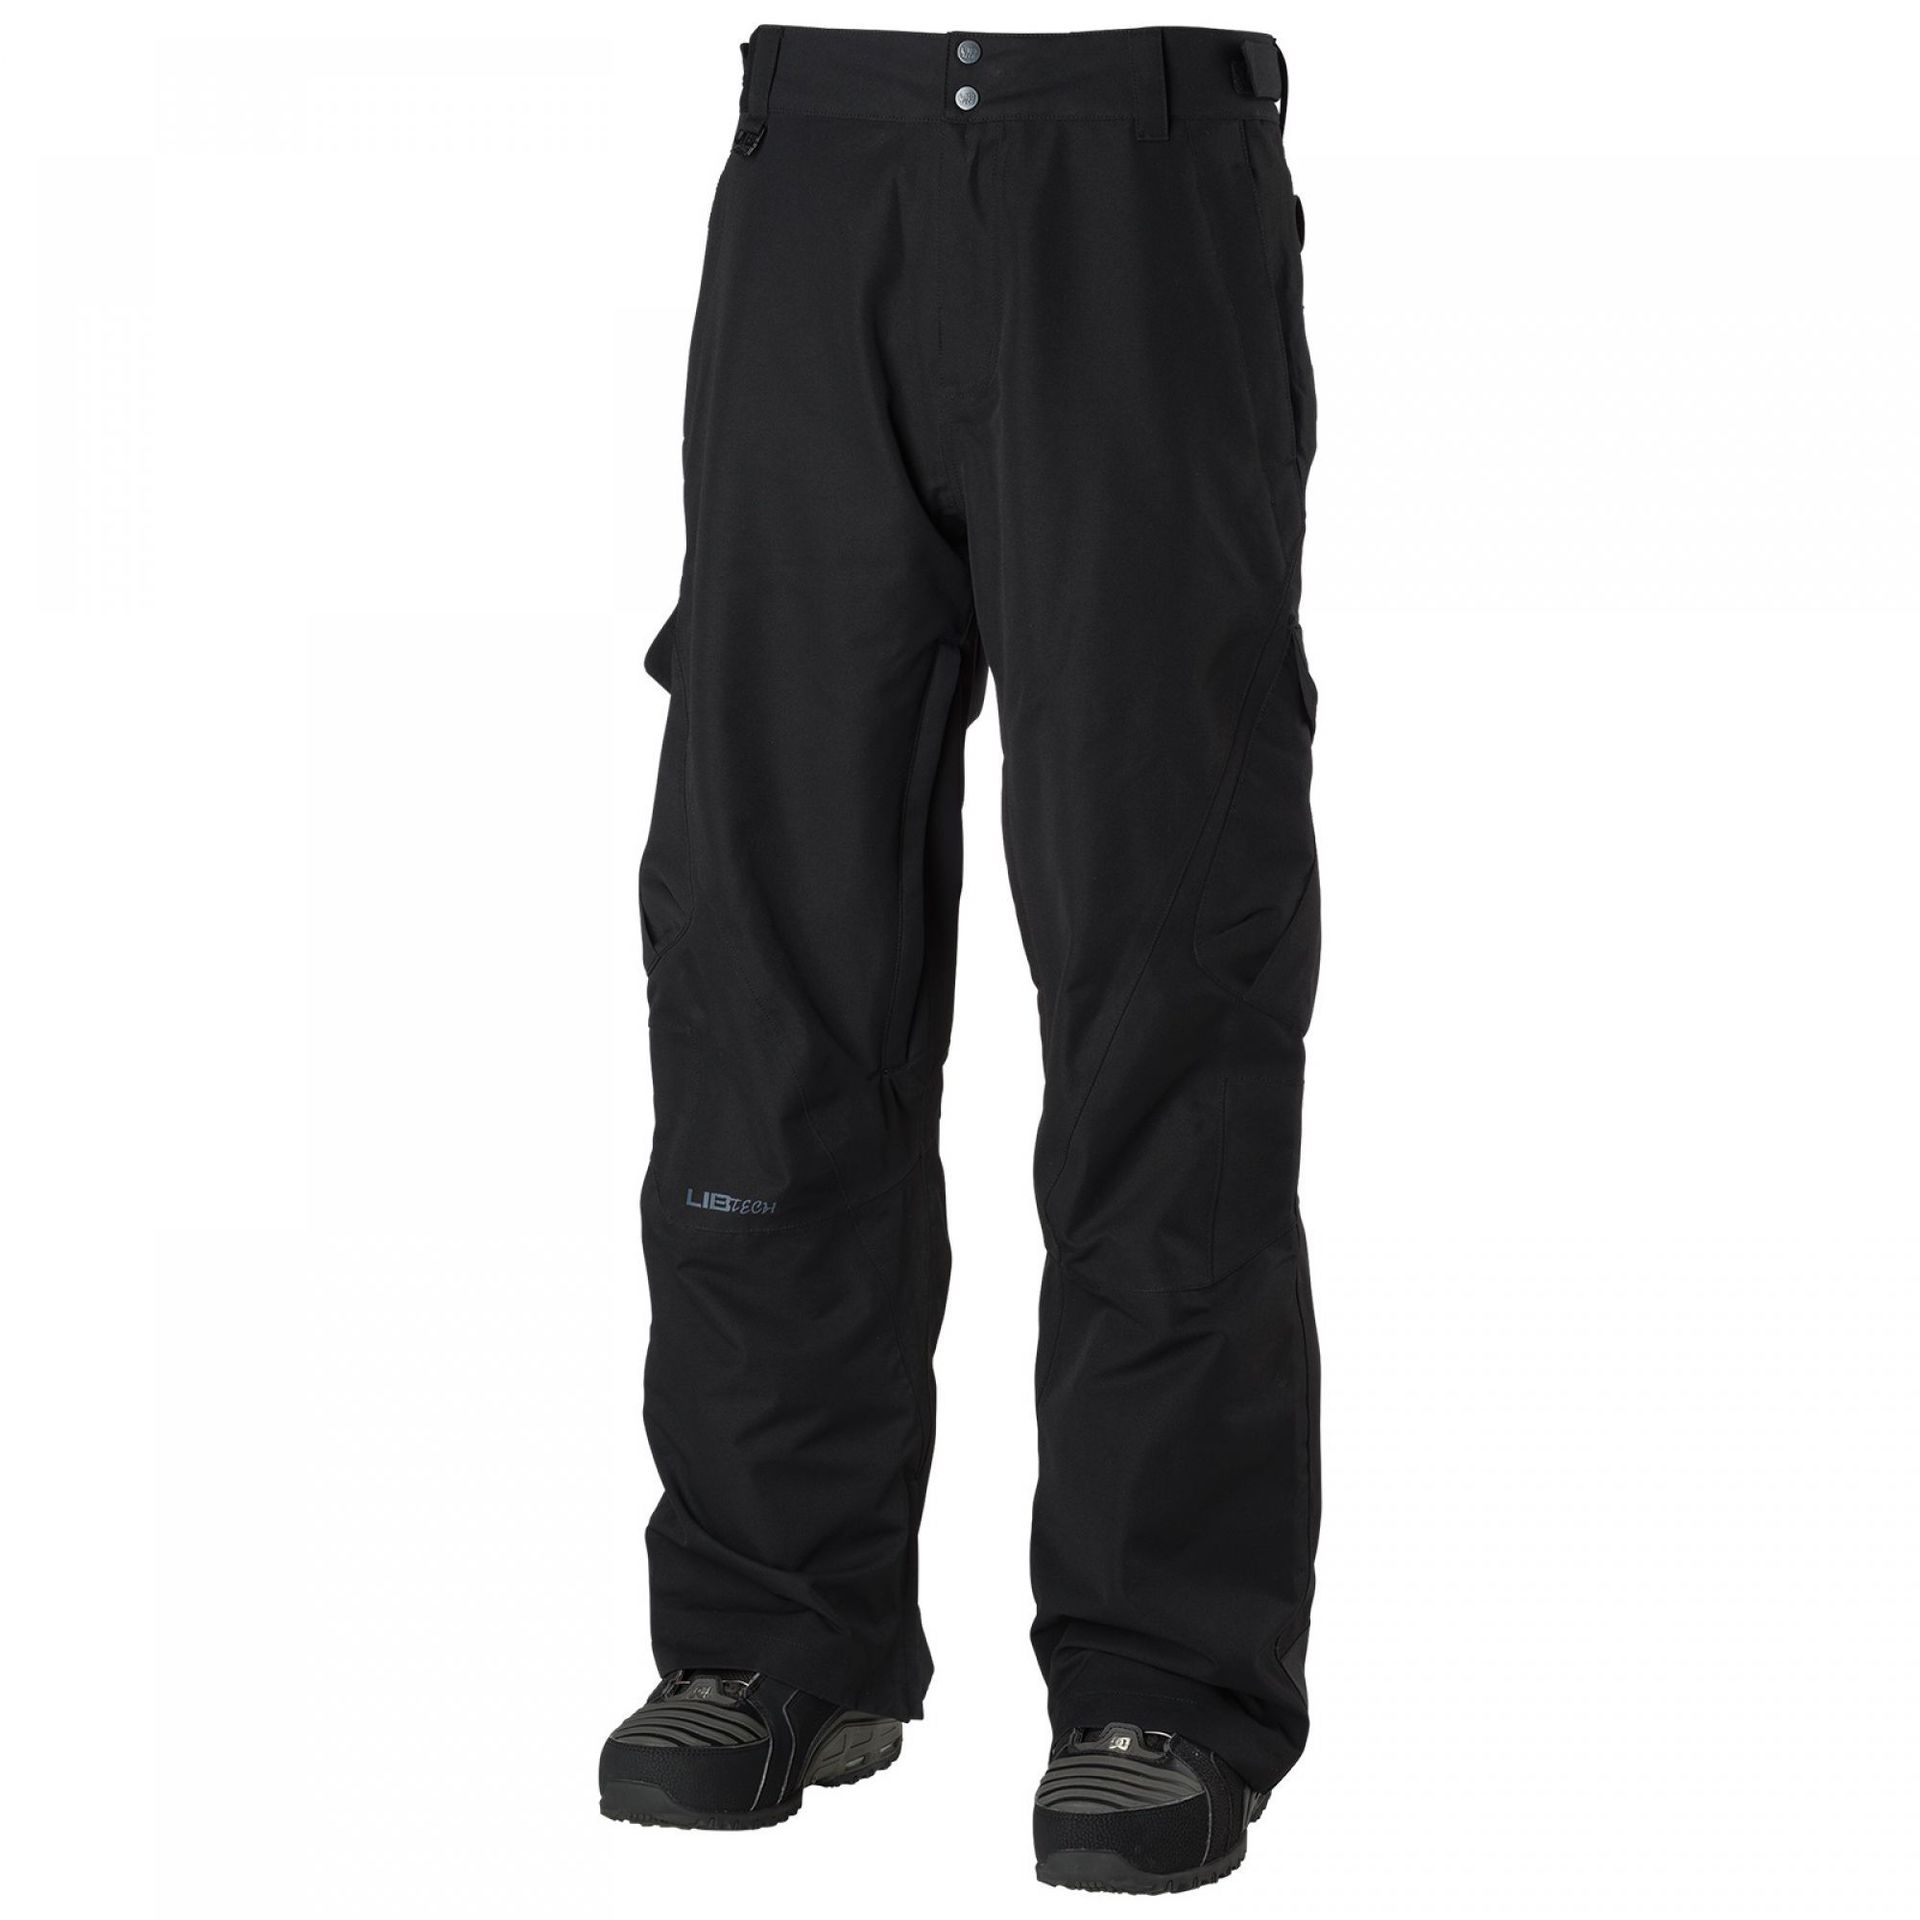 SPODNIE  LIB TECH GO CAR PANT BLACK